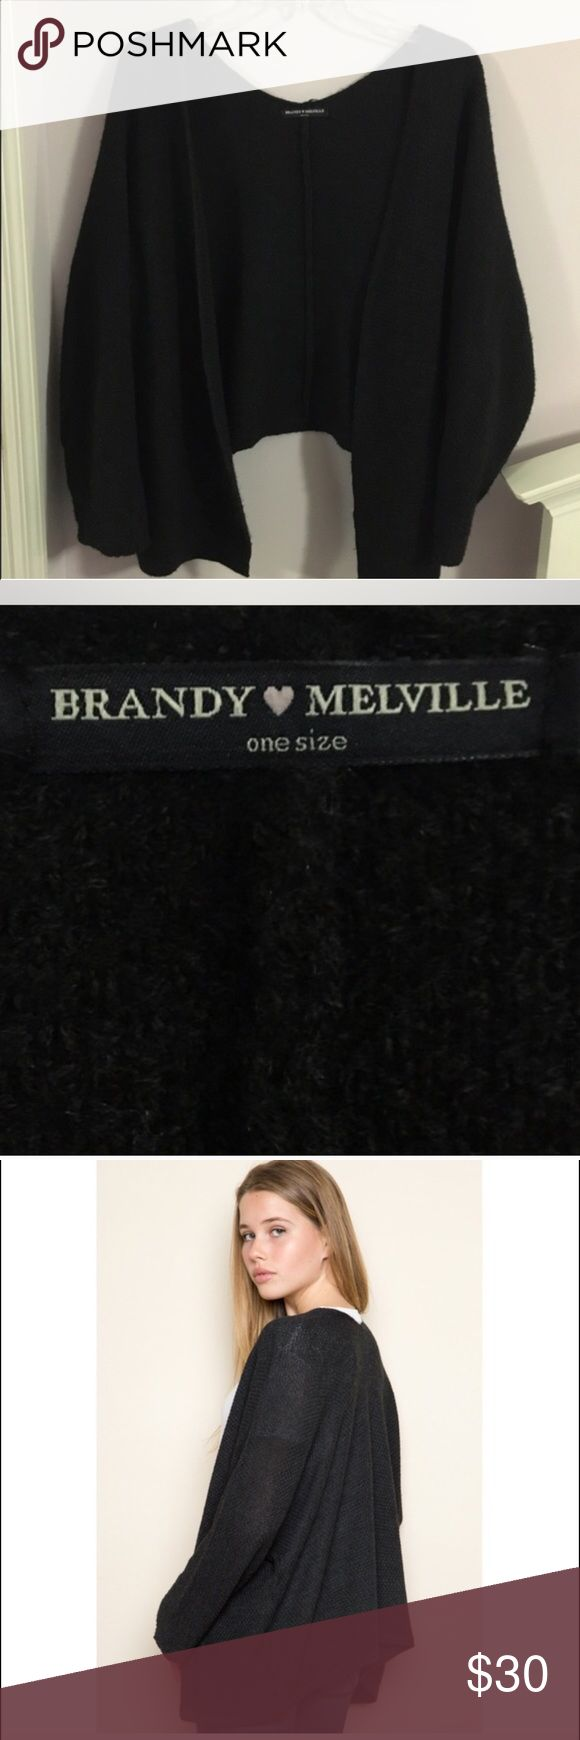 Brandy Melville Cardigan Black Brandy Melville Caroline Cardigan. Excellent used condition. One size fits most. Brandy Melville Sweaters Cardigans